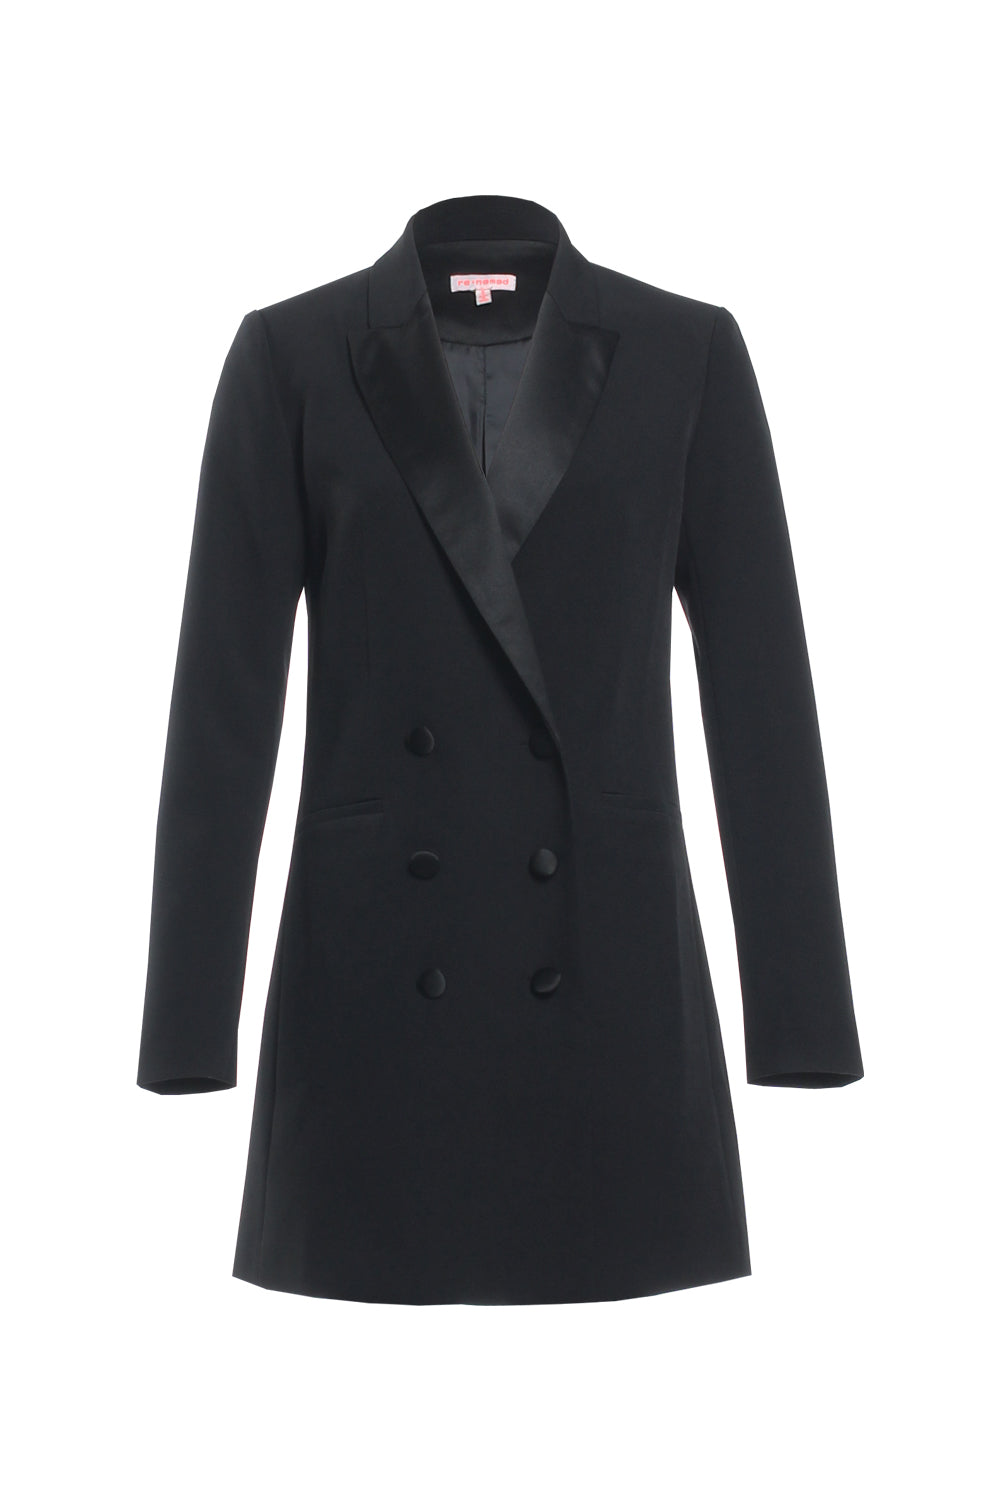 Black Tuxedo Blazer Dress - Coveted Style